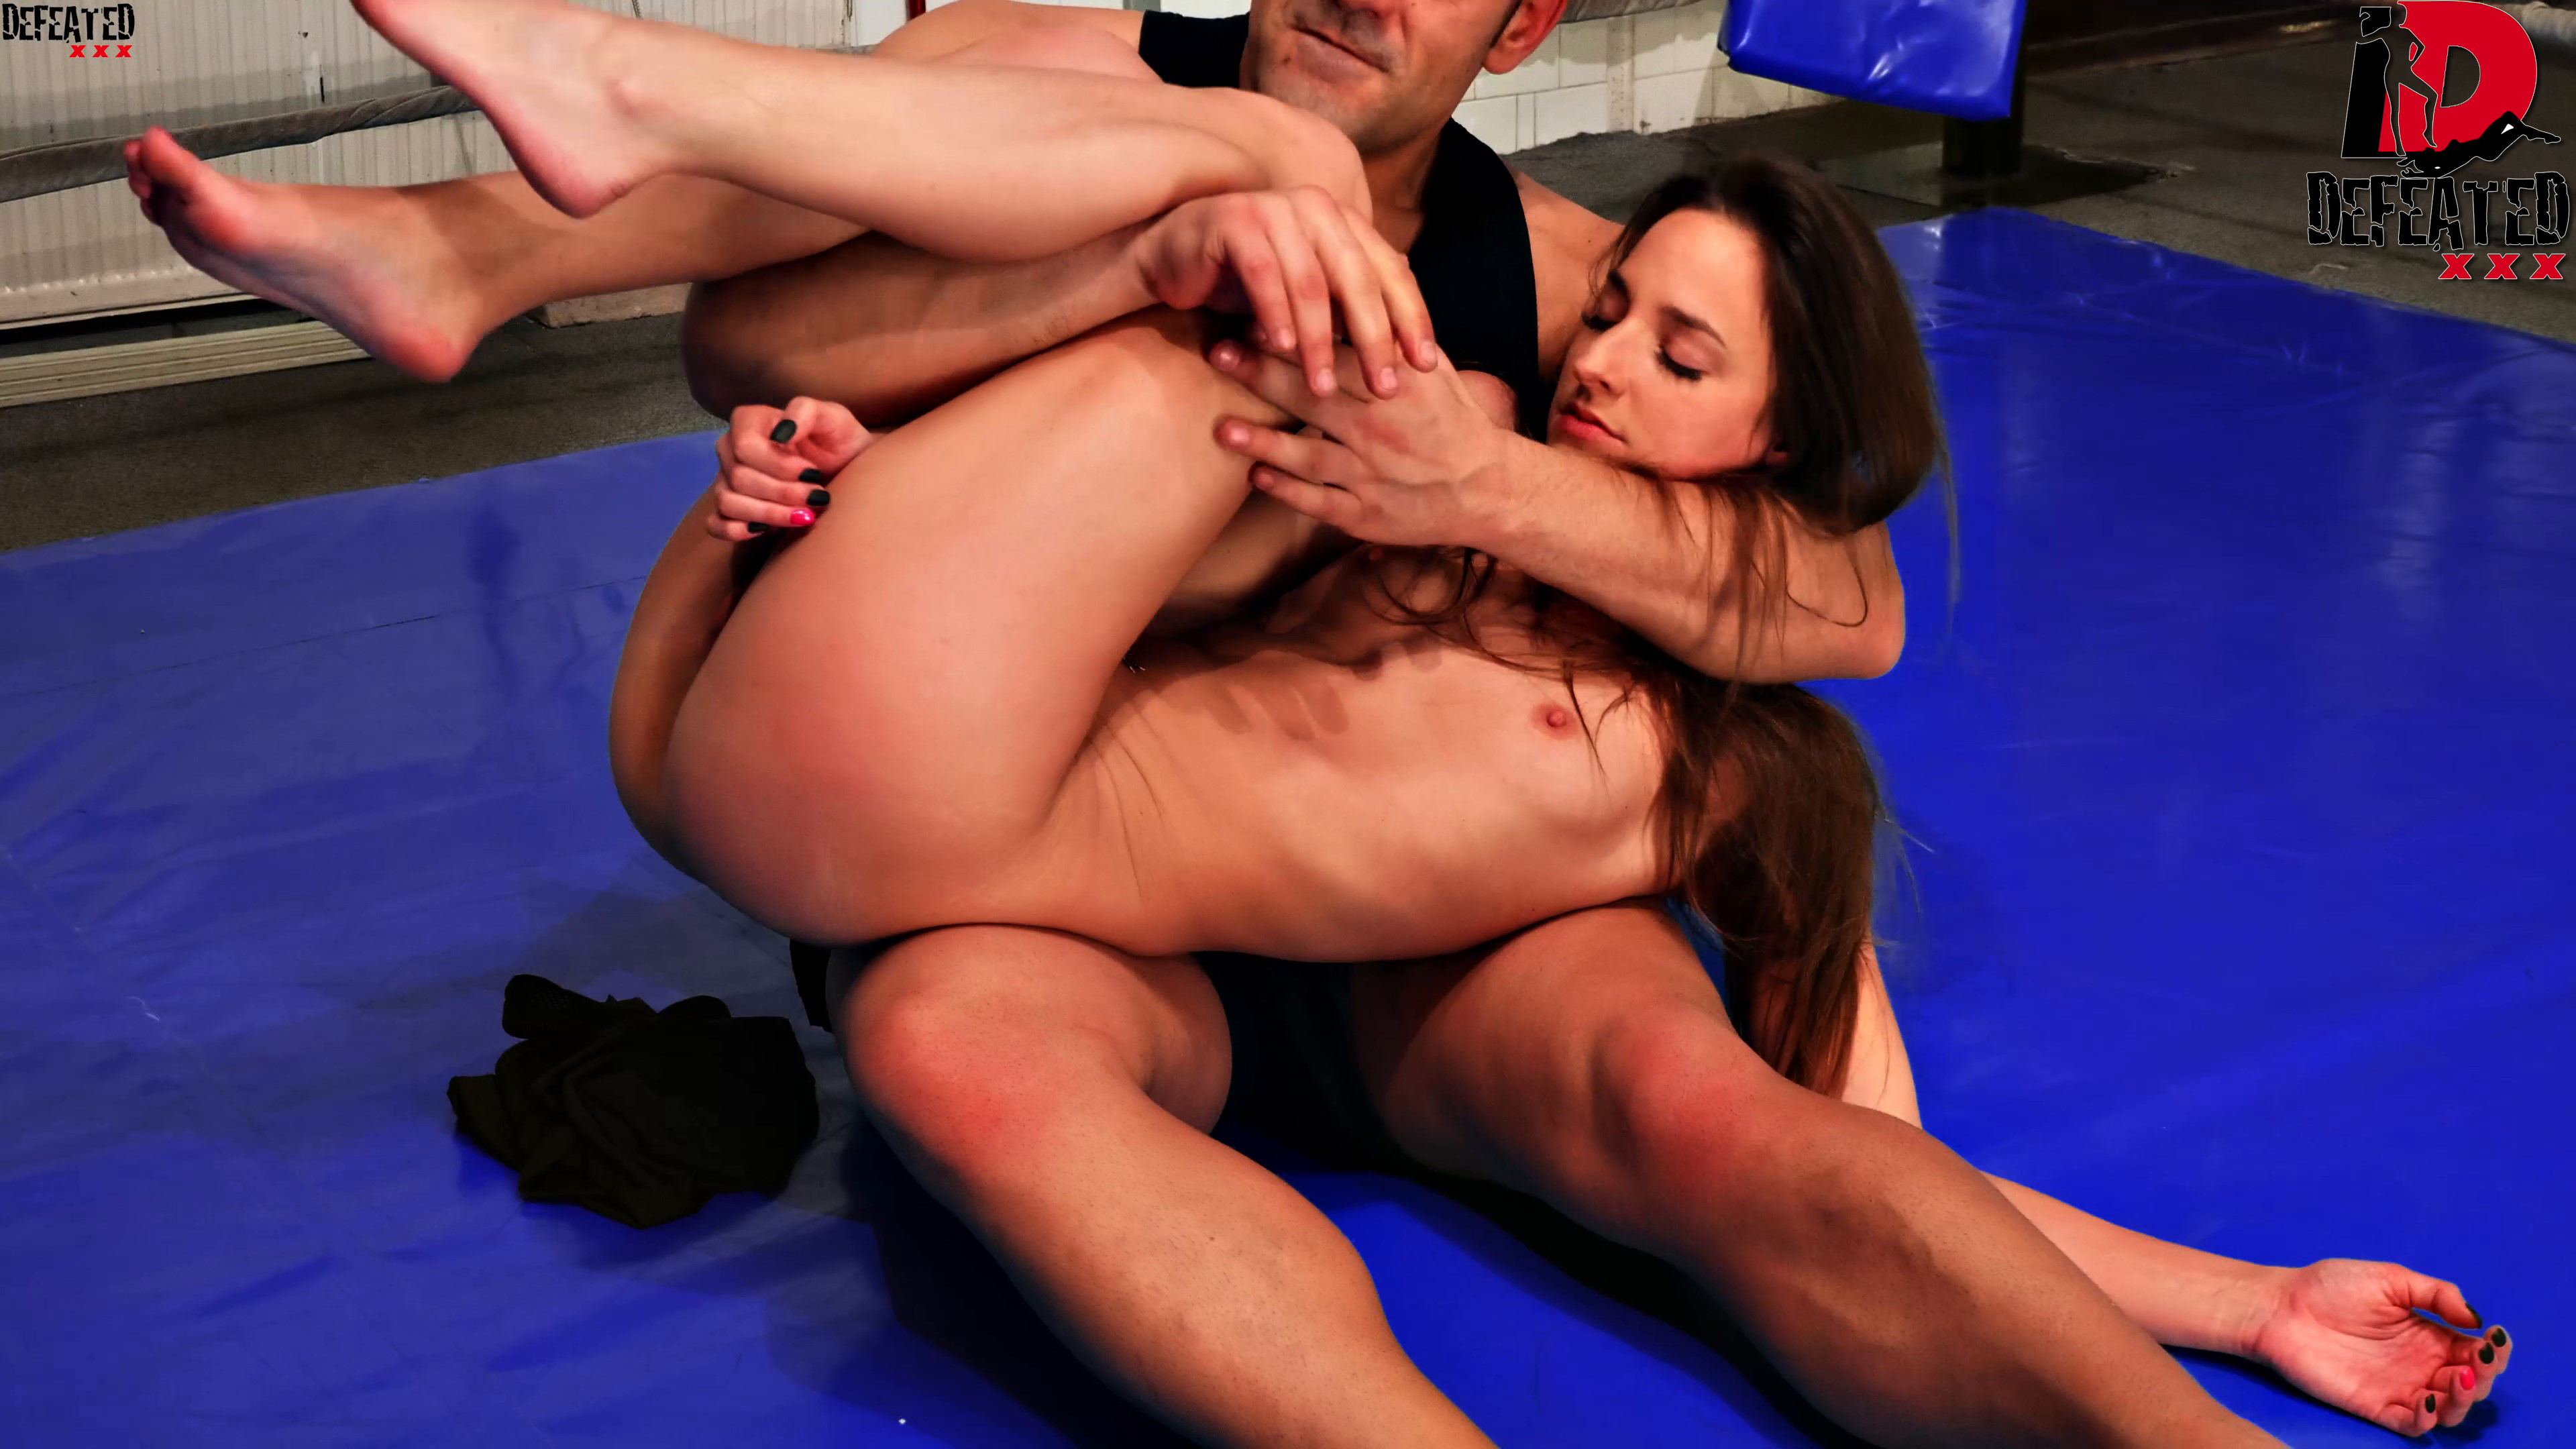 DEFEATED-MXD66---Amirah-Antonio-(43)